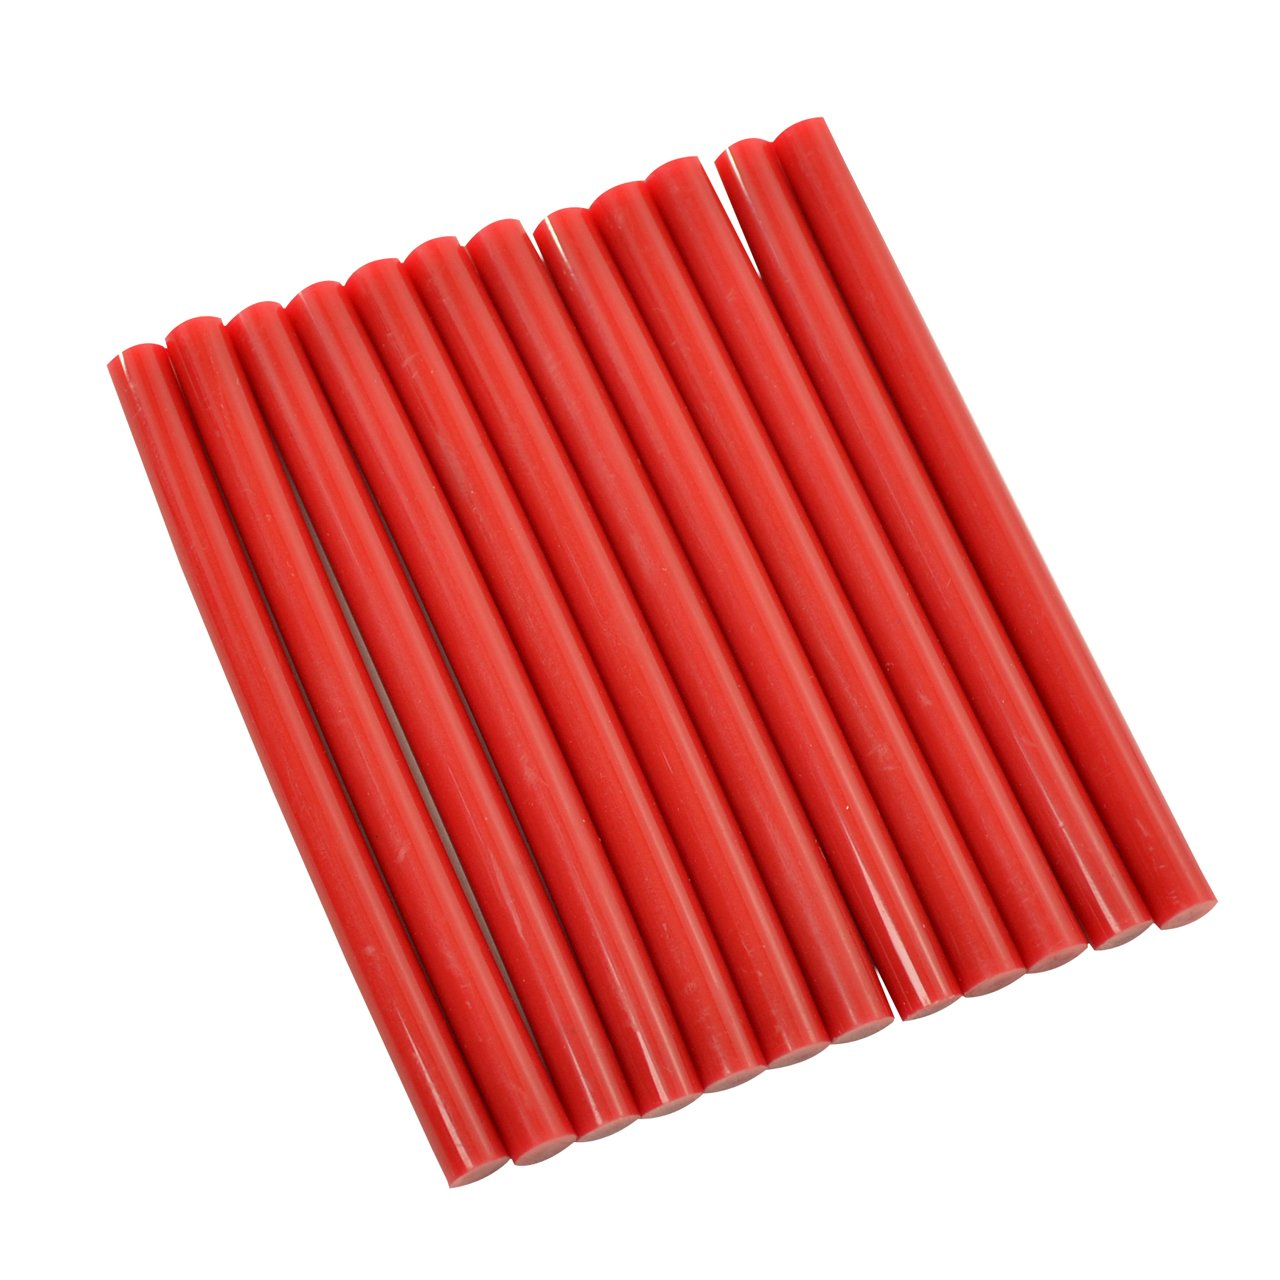 GlueSticksDirect Red Colored Glue Stick mini X 4